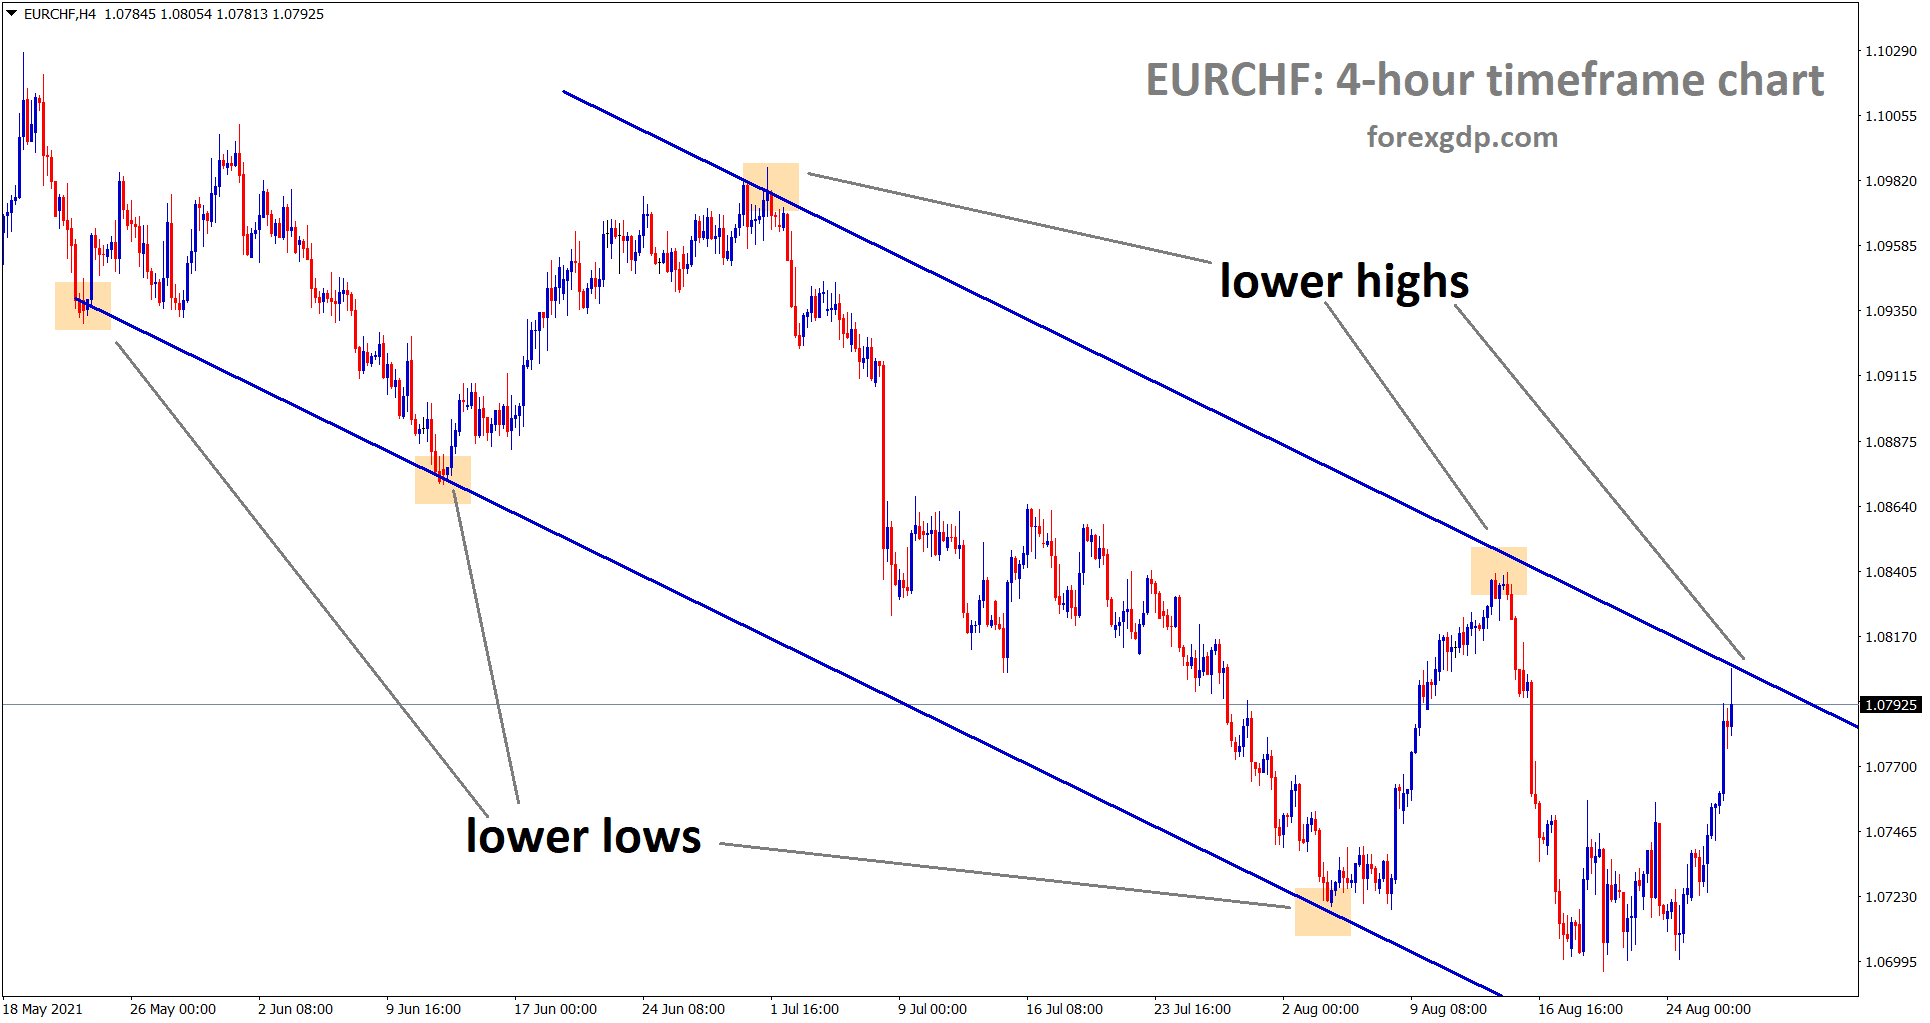 EURCHF is moving in a downtrend now the market has reached the lower high wait for the breakout or reversal